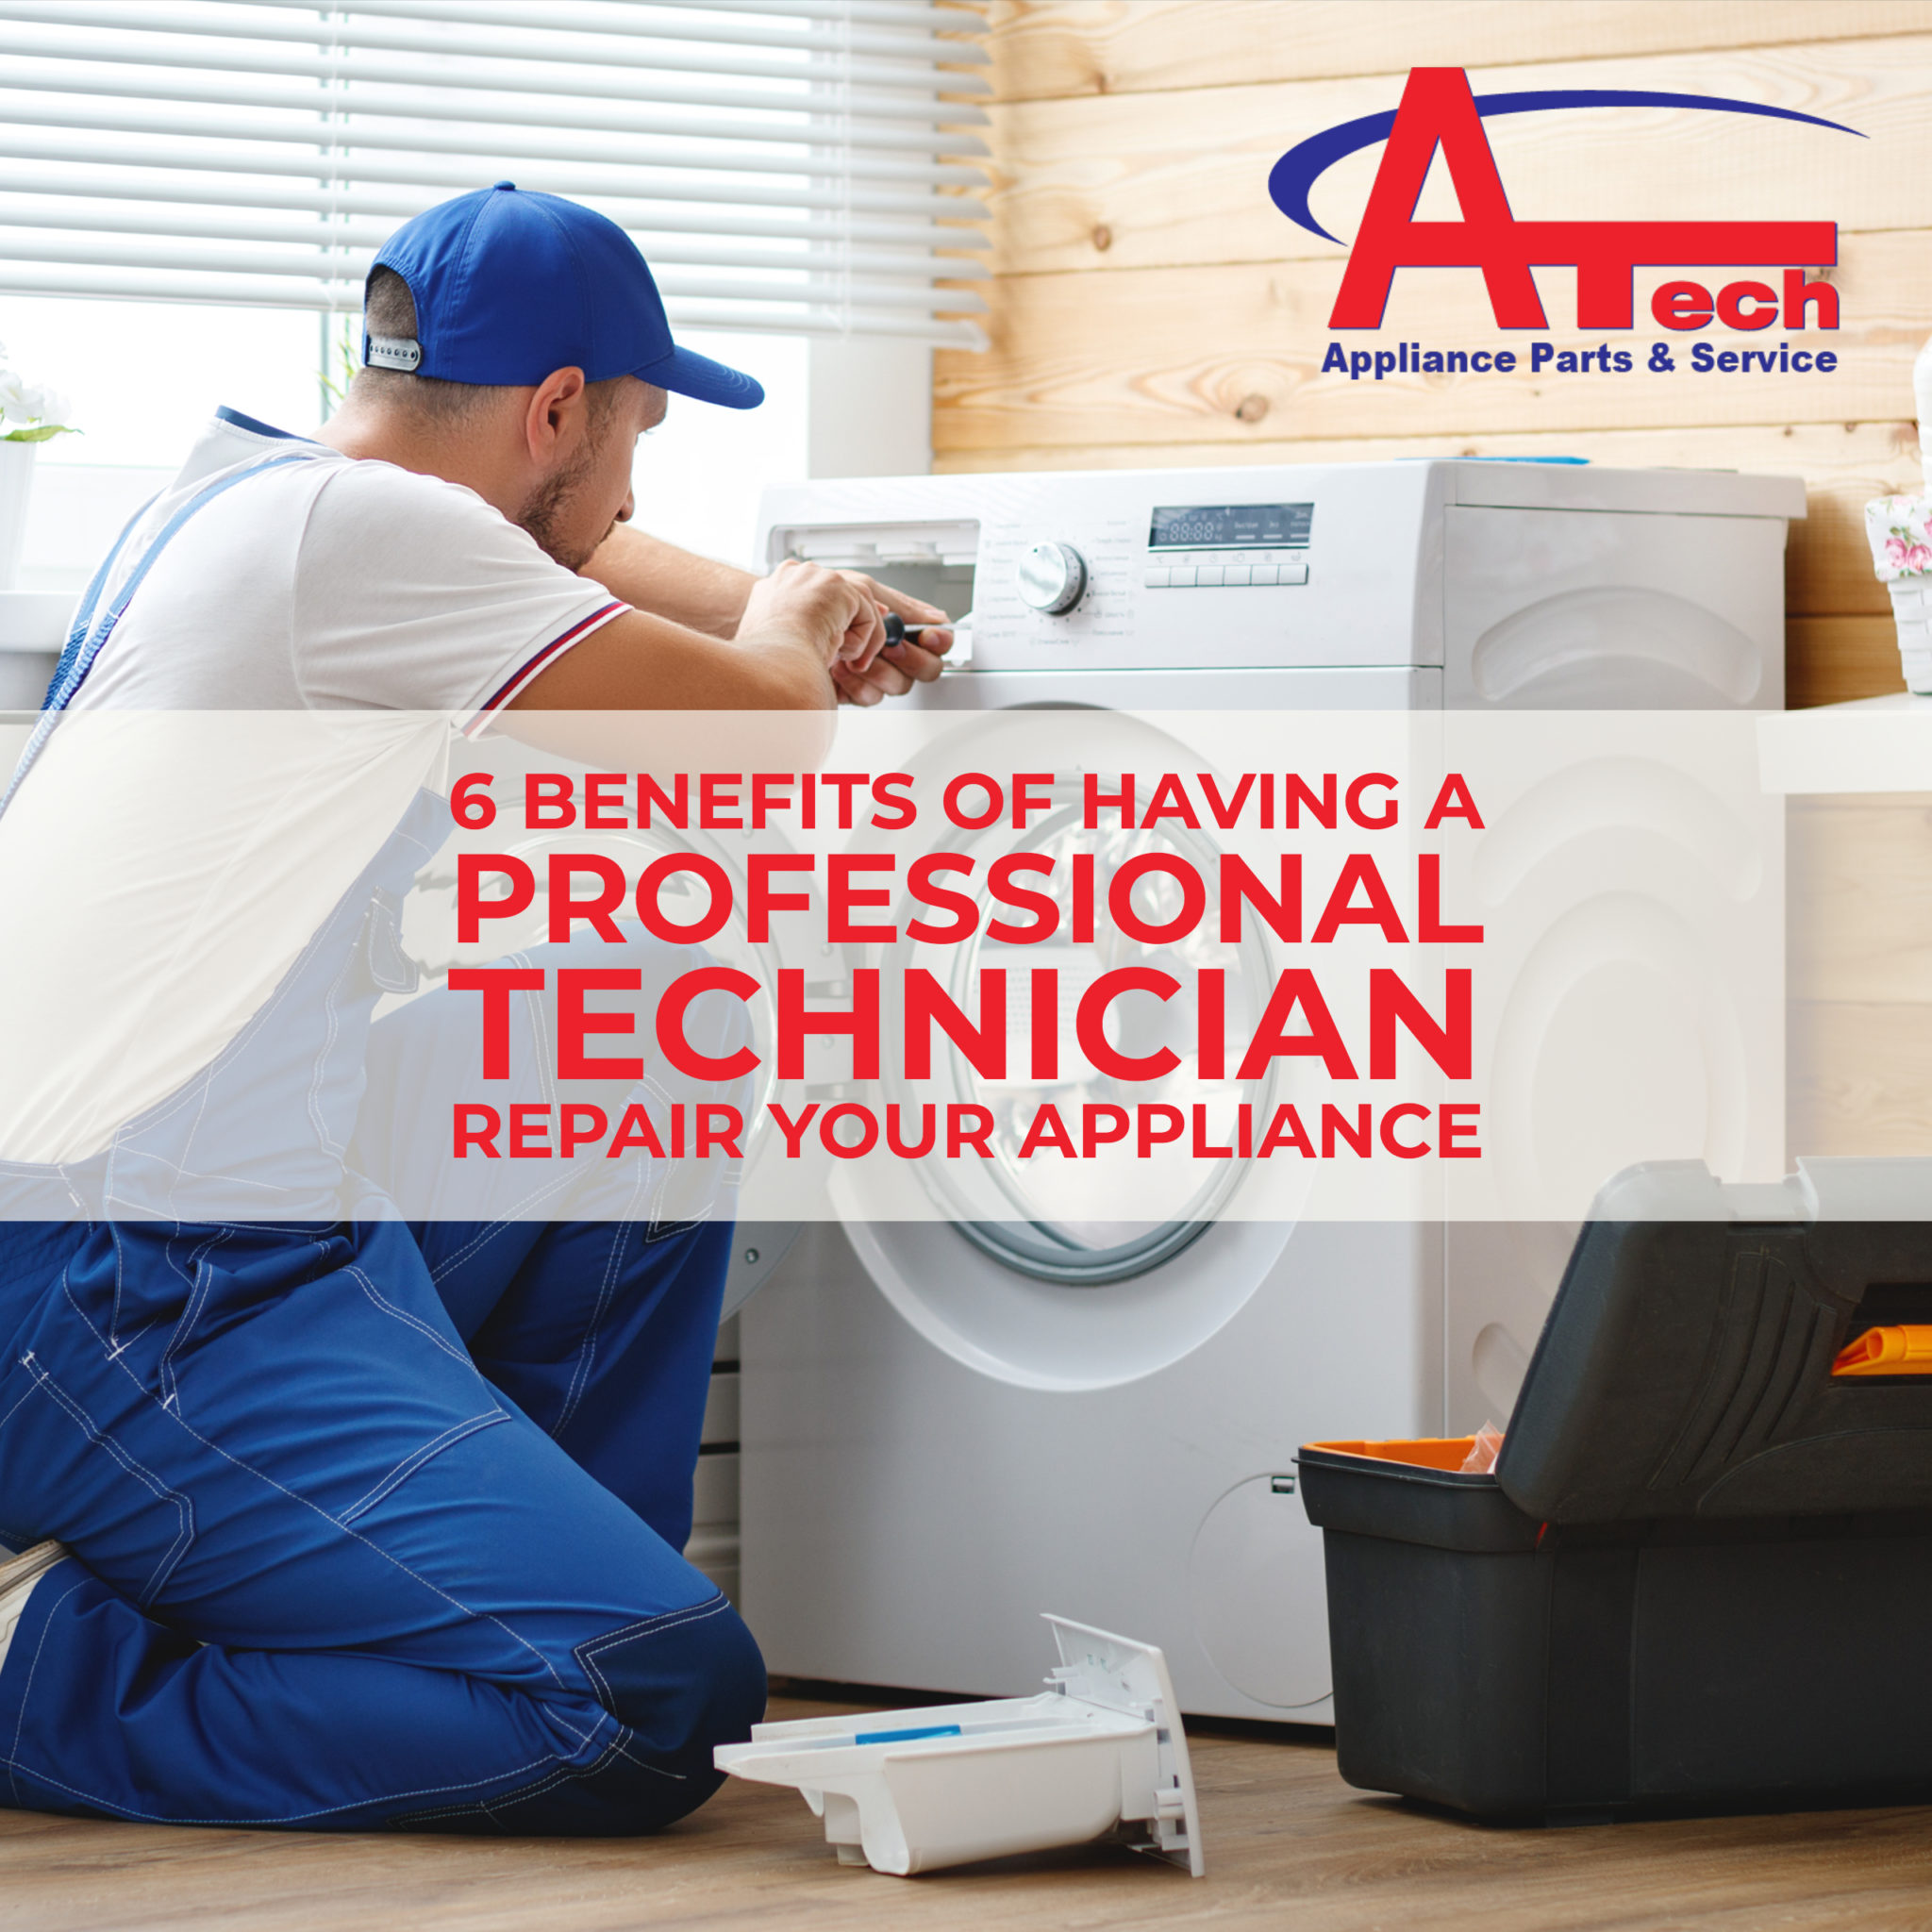 6 benefits of having a professional technician repair your appliance